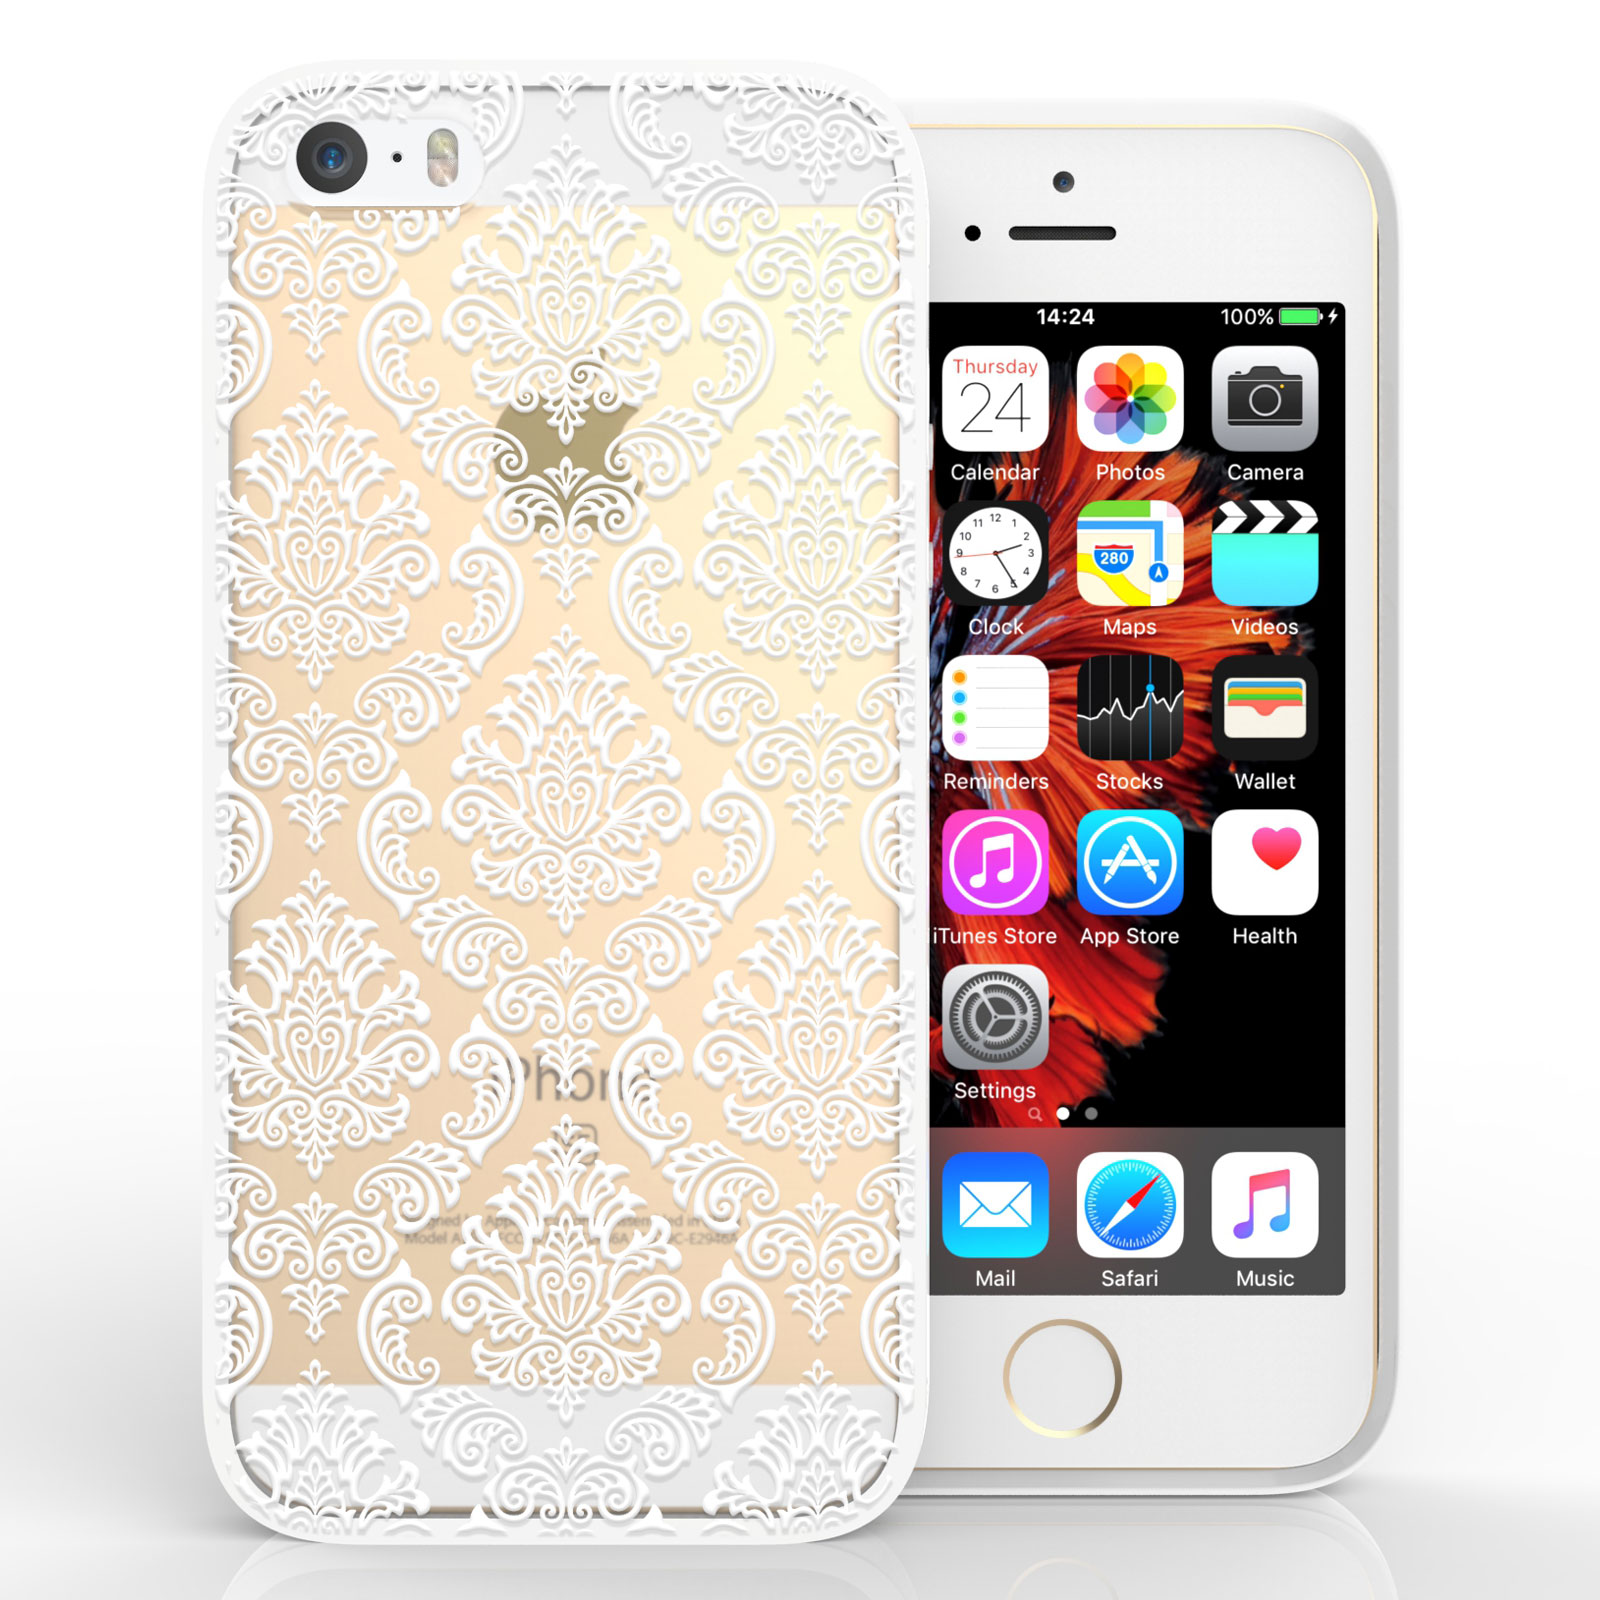 Yousave Accessories iPhone 5 and SE TPU Patterned Hard Case - Damask White